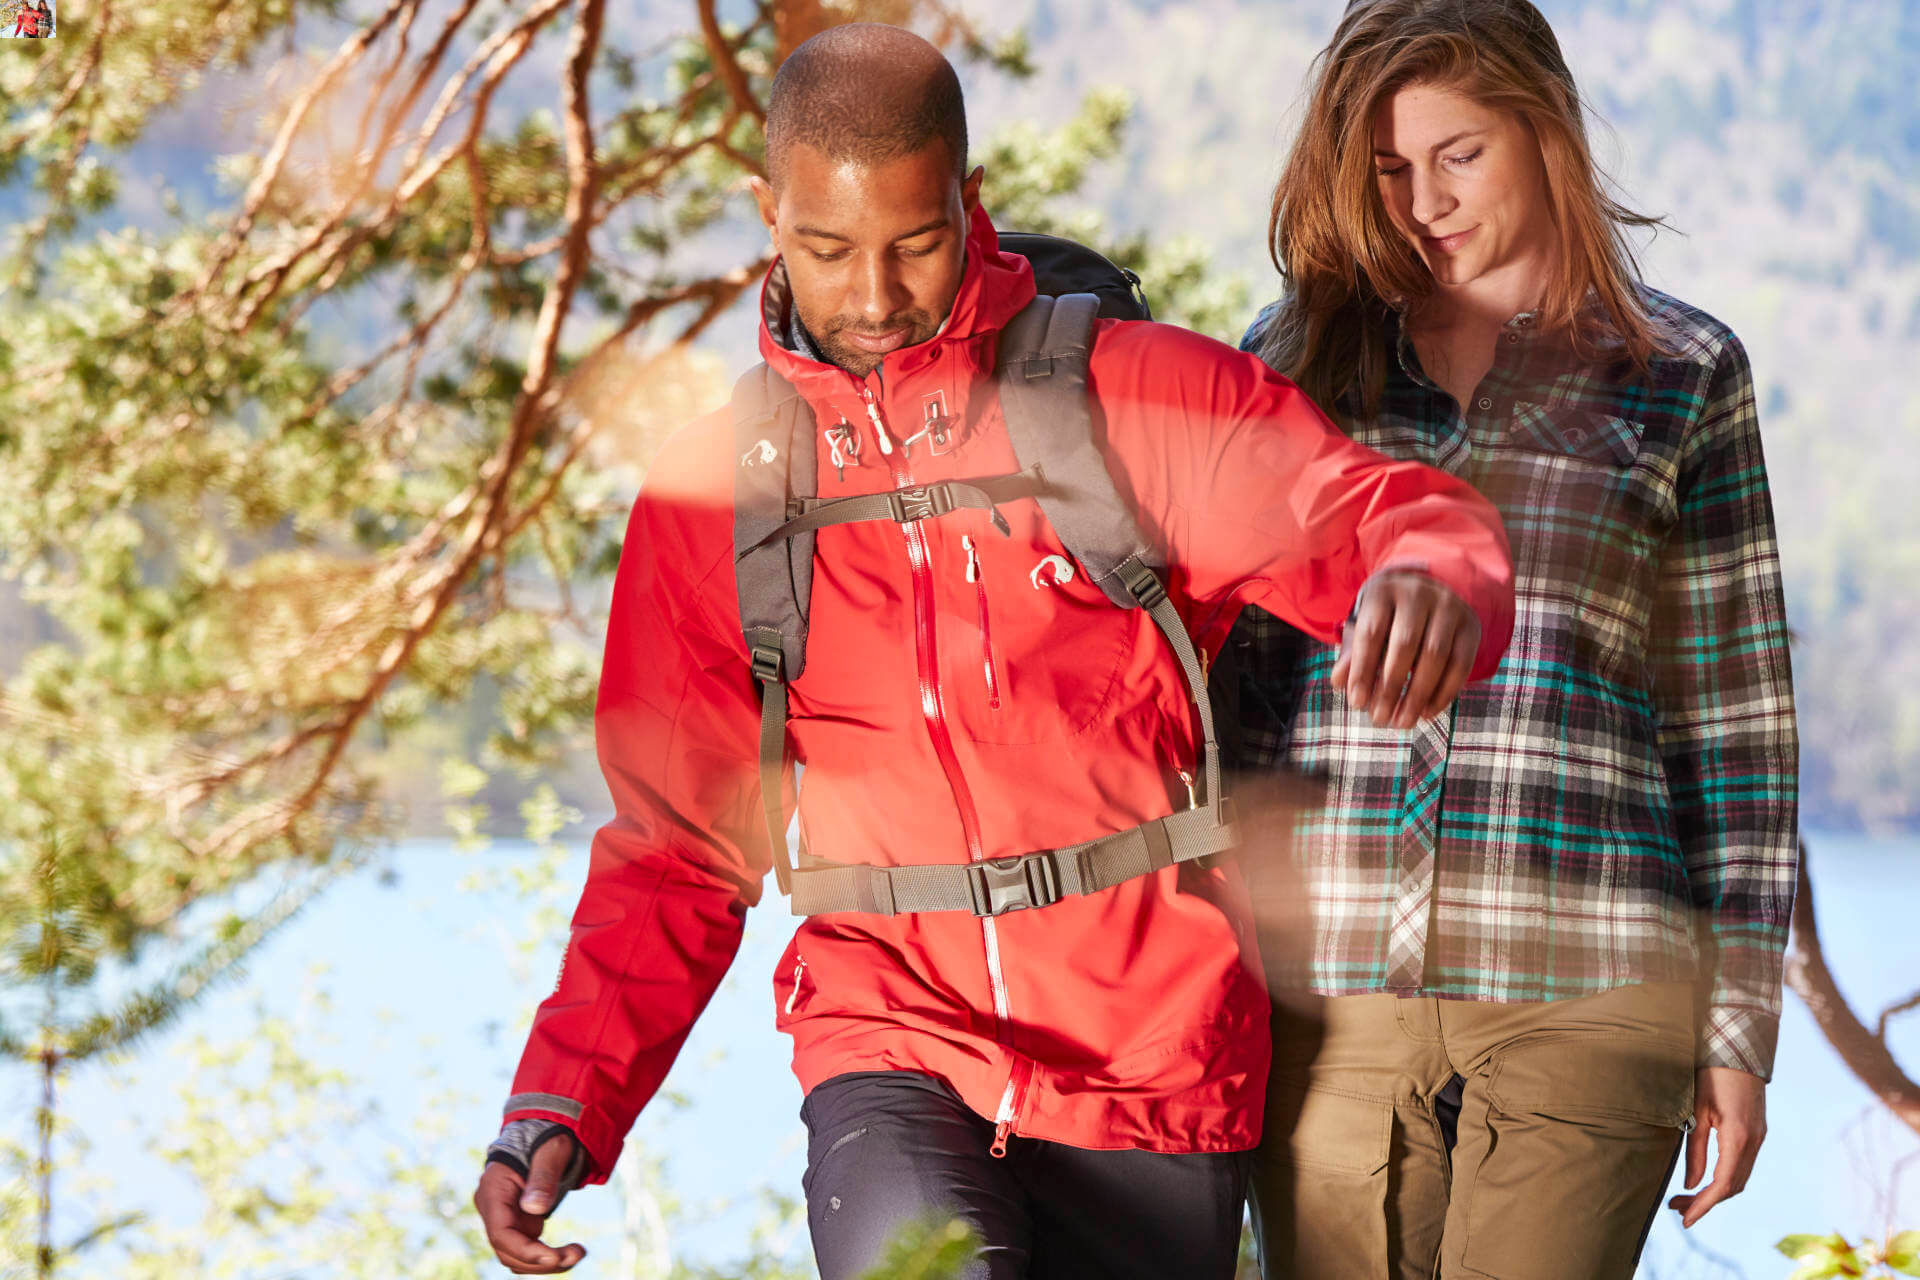 Care of function garments - Outdoor clothing must be properly cared for in order to maintain its functionality.